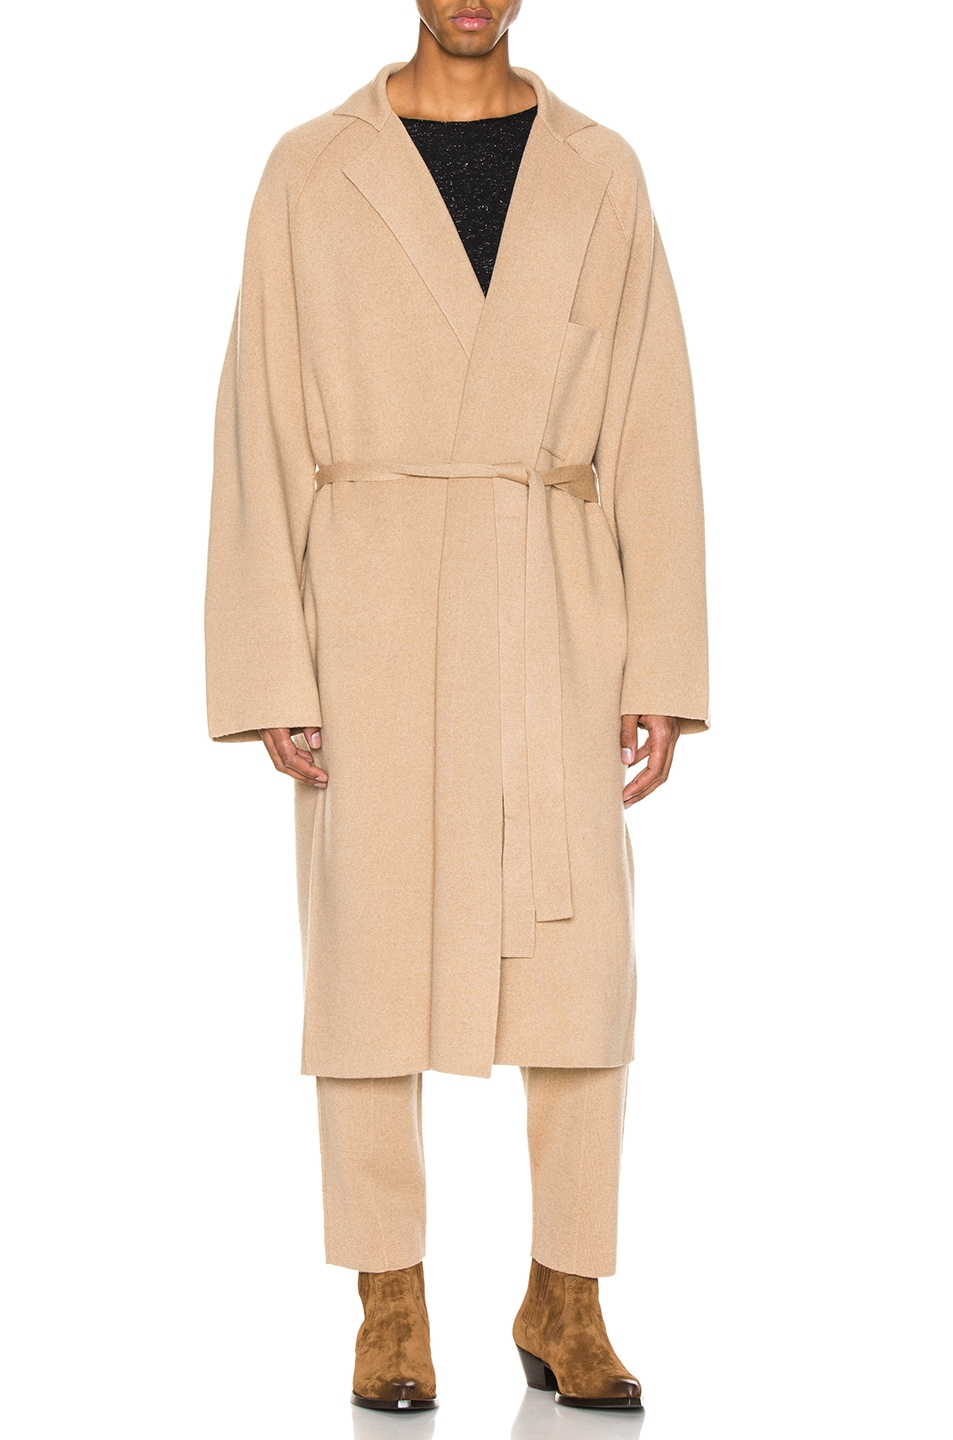 Image 2 of Haider Ackermann Knitted Coat in Invidia Camel